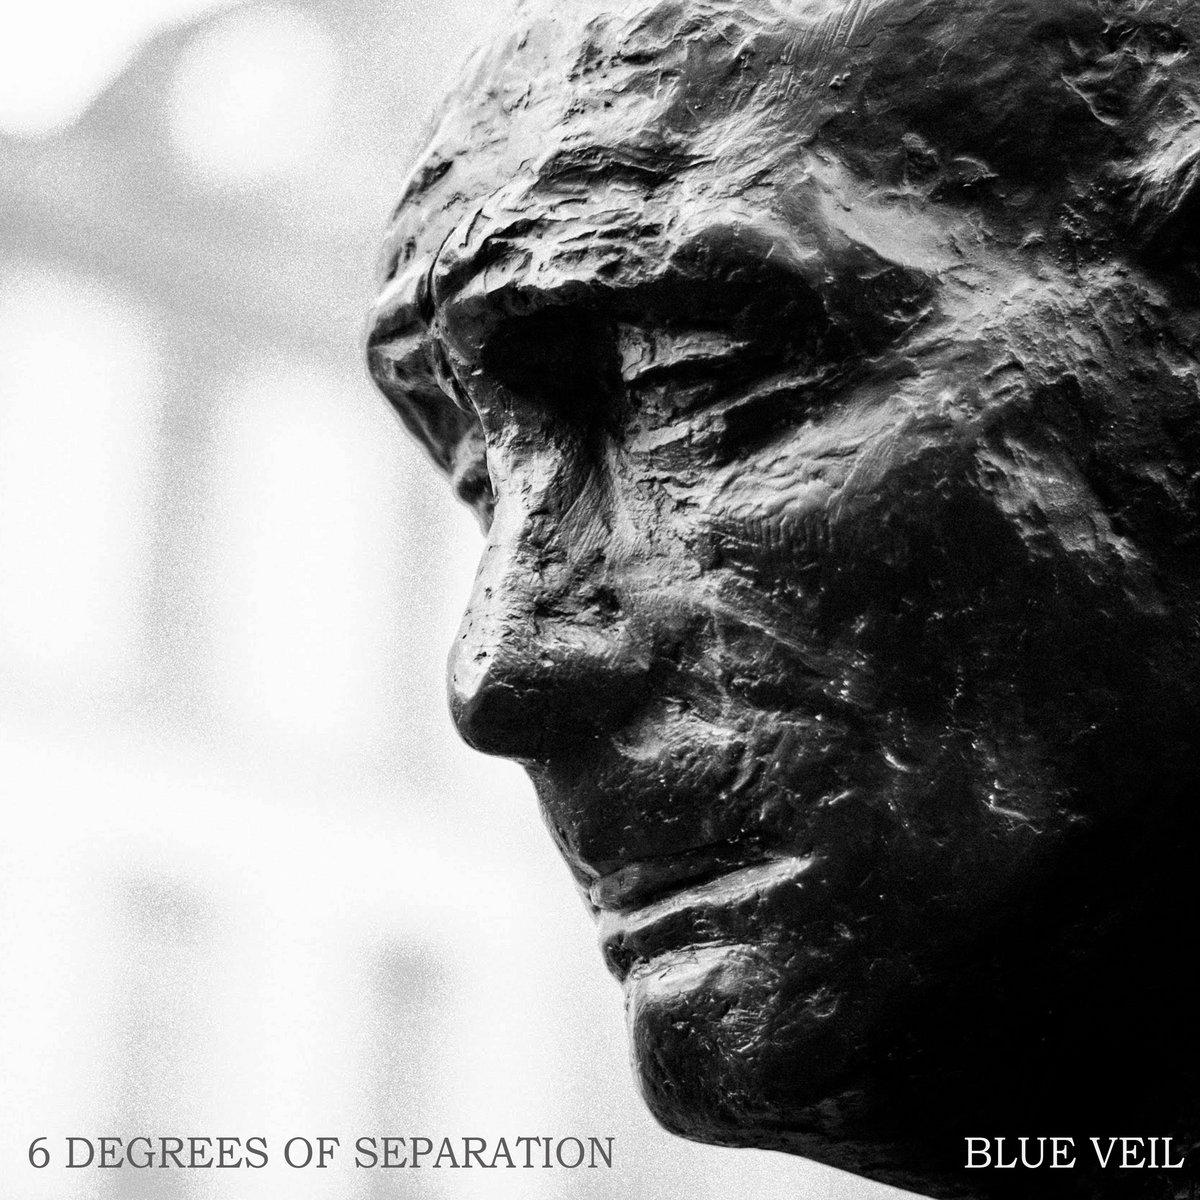 6 Degrees Of Separation By Blue Veil